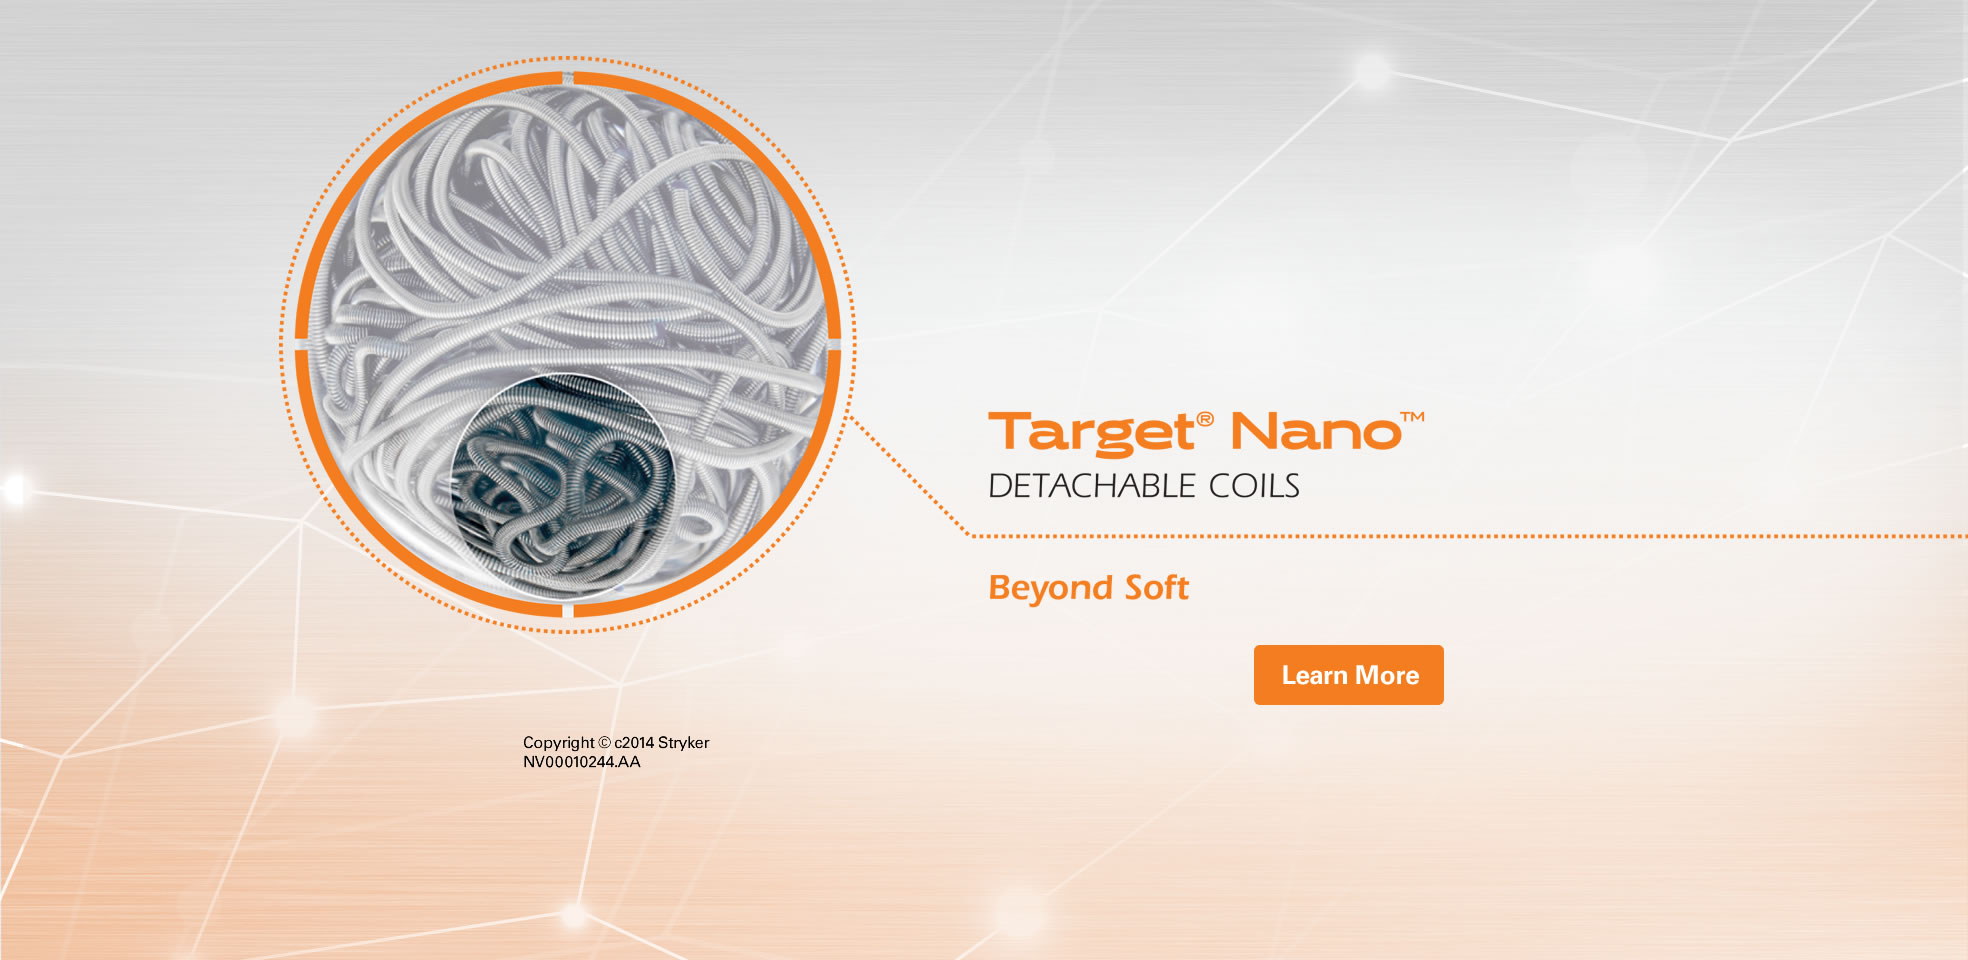 Learn more about the Target Nano Detachable Coils | Click for More